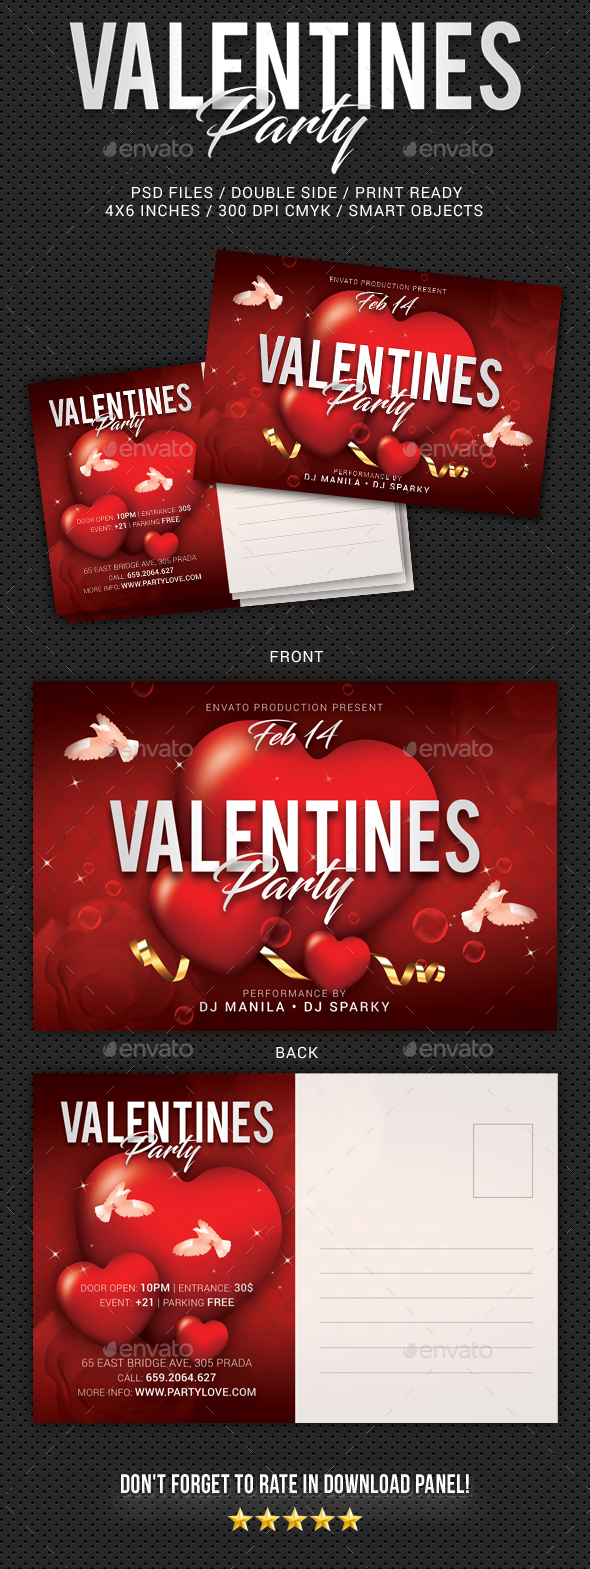 Valentines Day Party Postcard - Cards & Invites Print Templates